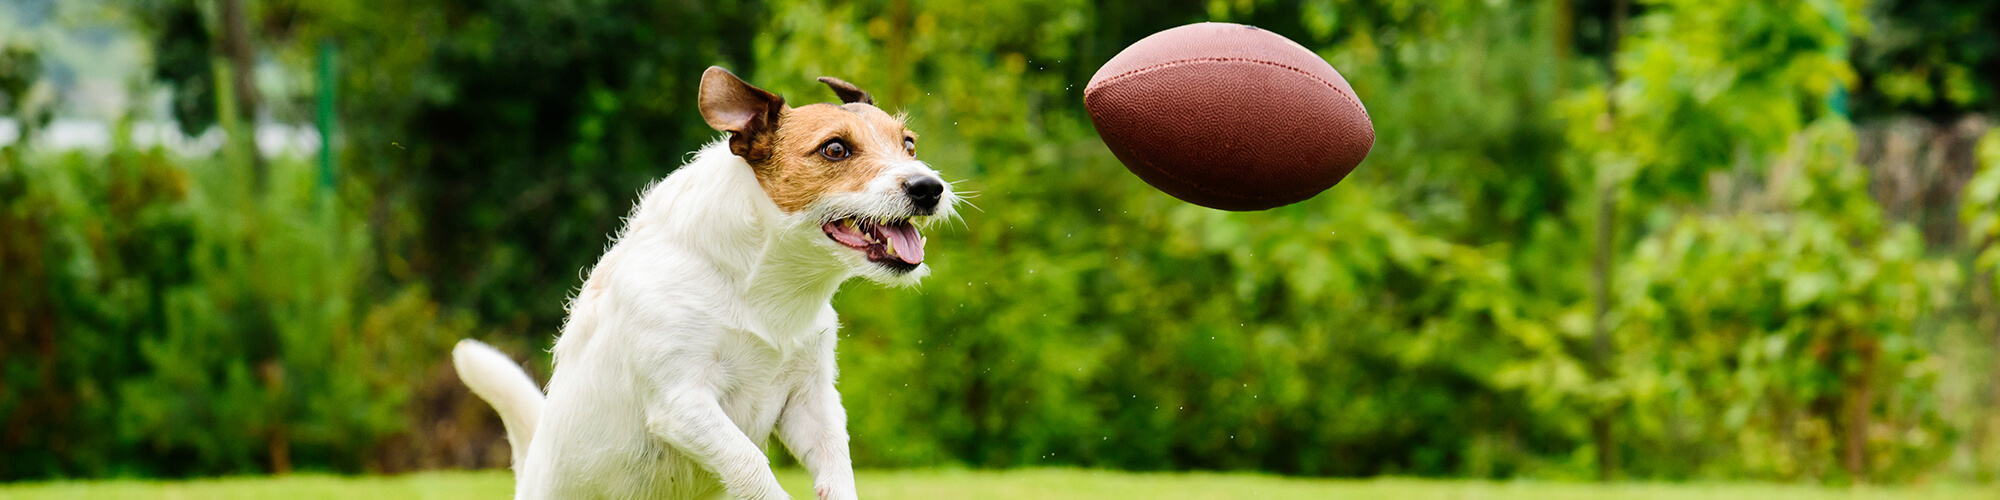 dog with football dgp